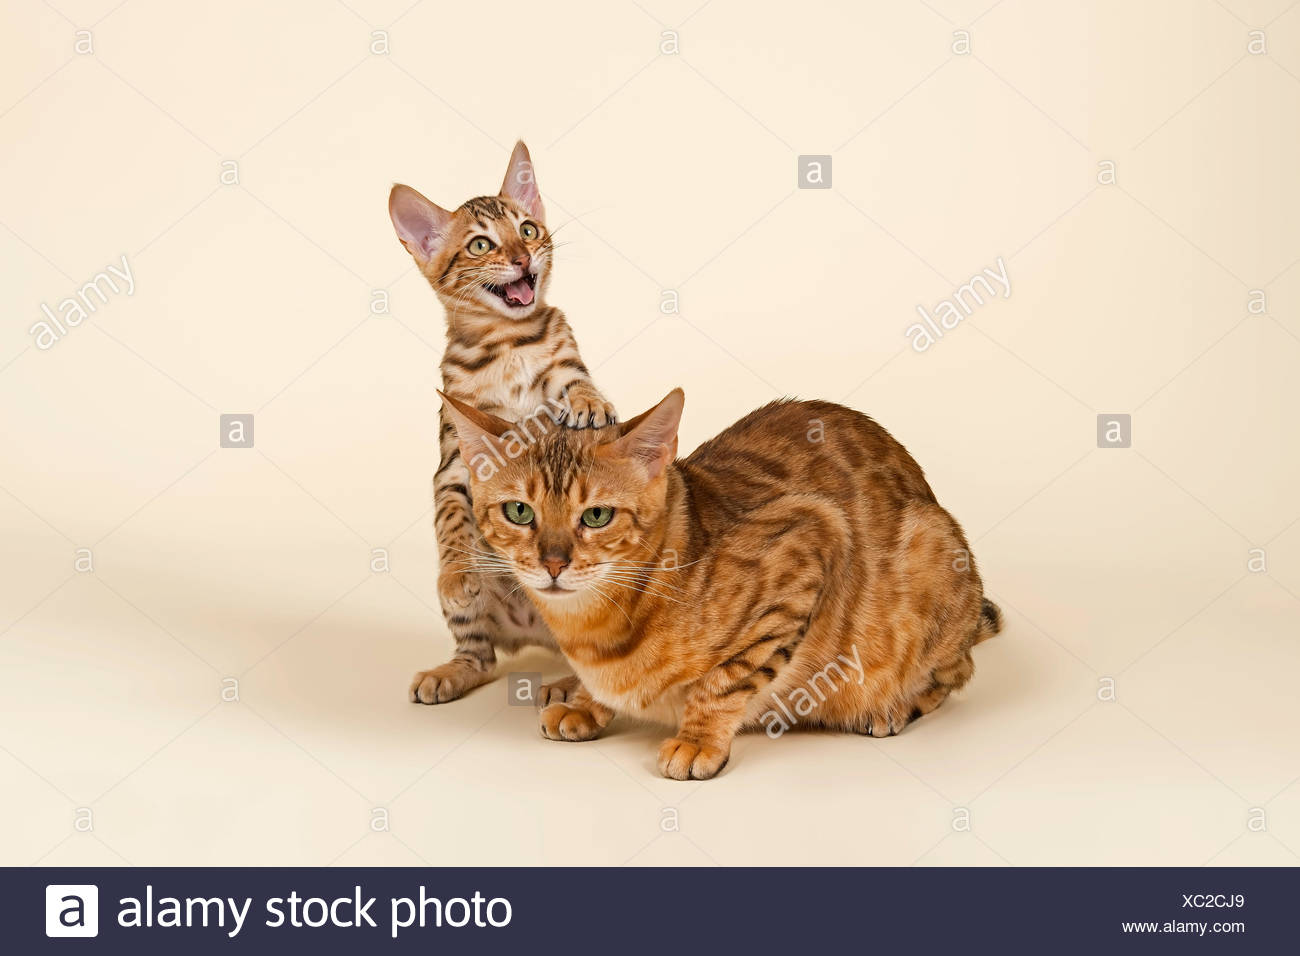 Bengals, lively kitten with fatigued mother - Stock Image